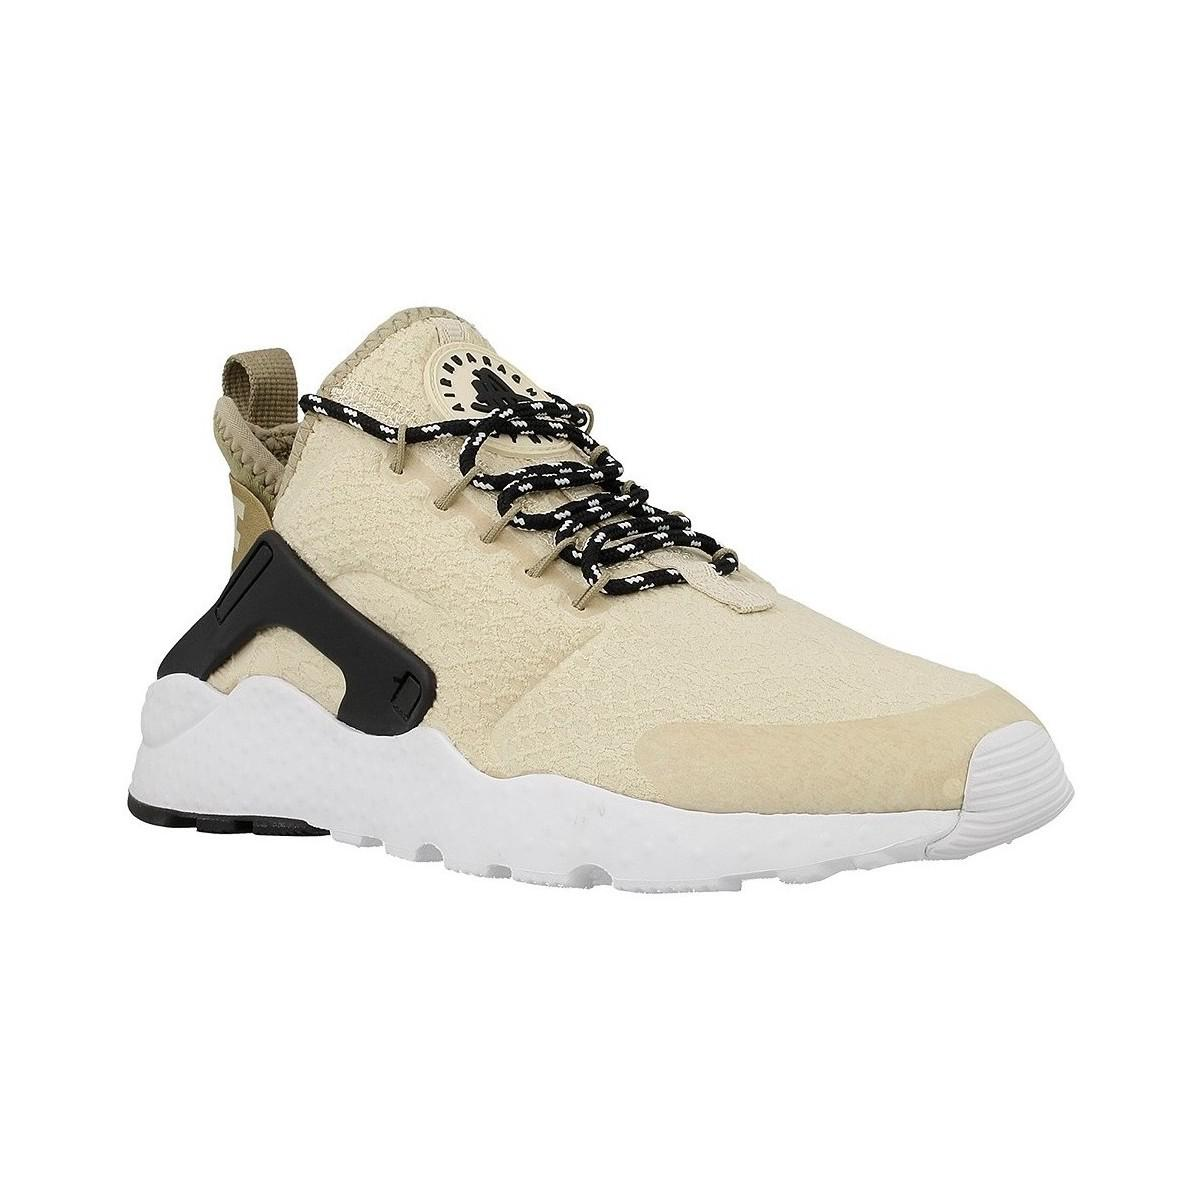 Nike W Air Huarache Run Ultra Femme Chaussures in (trainers) In Beige in  107608 c01706bacec8